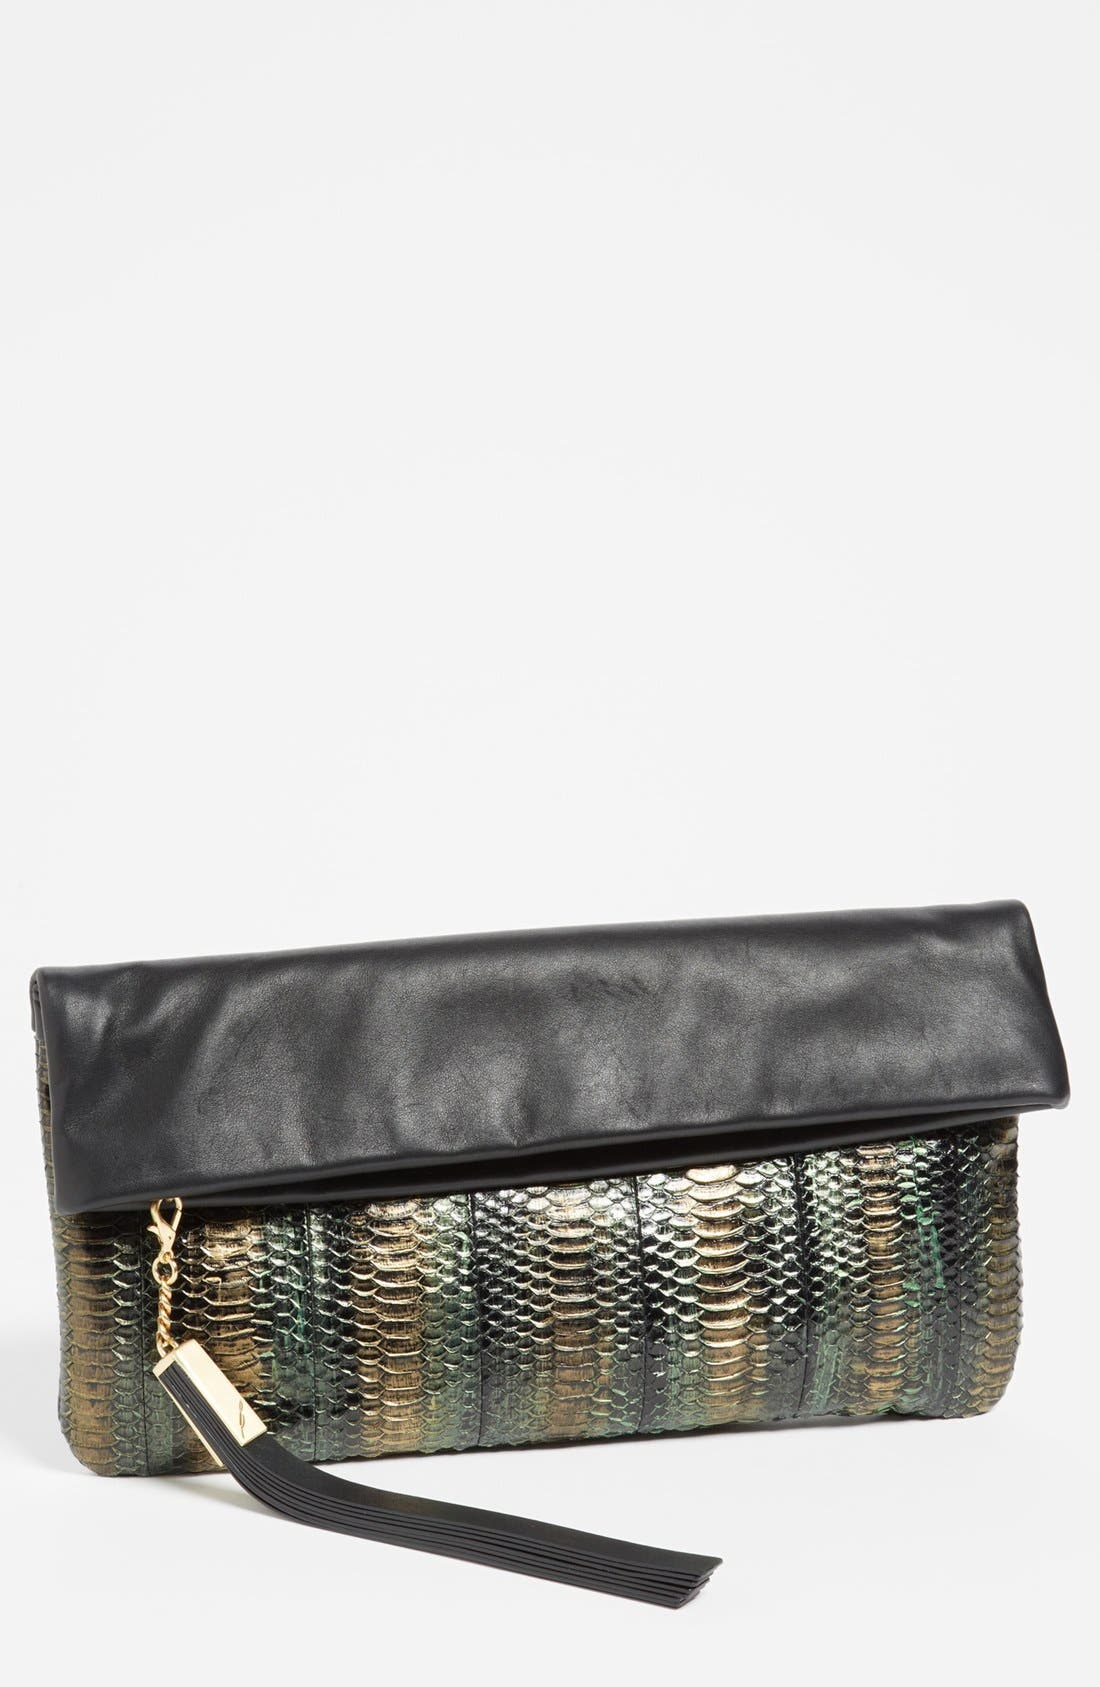 Main Image - B Brian Atwood 'Robin' Leather Foldover Clutch